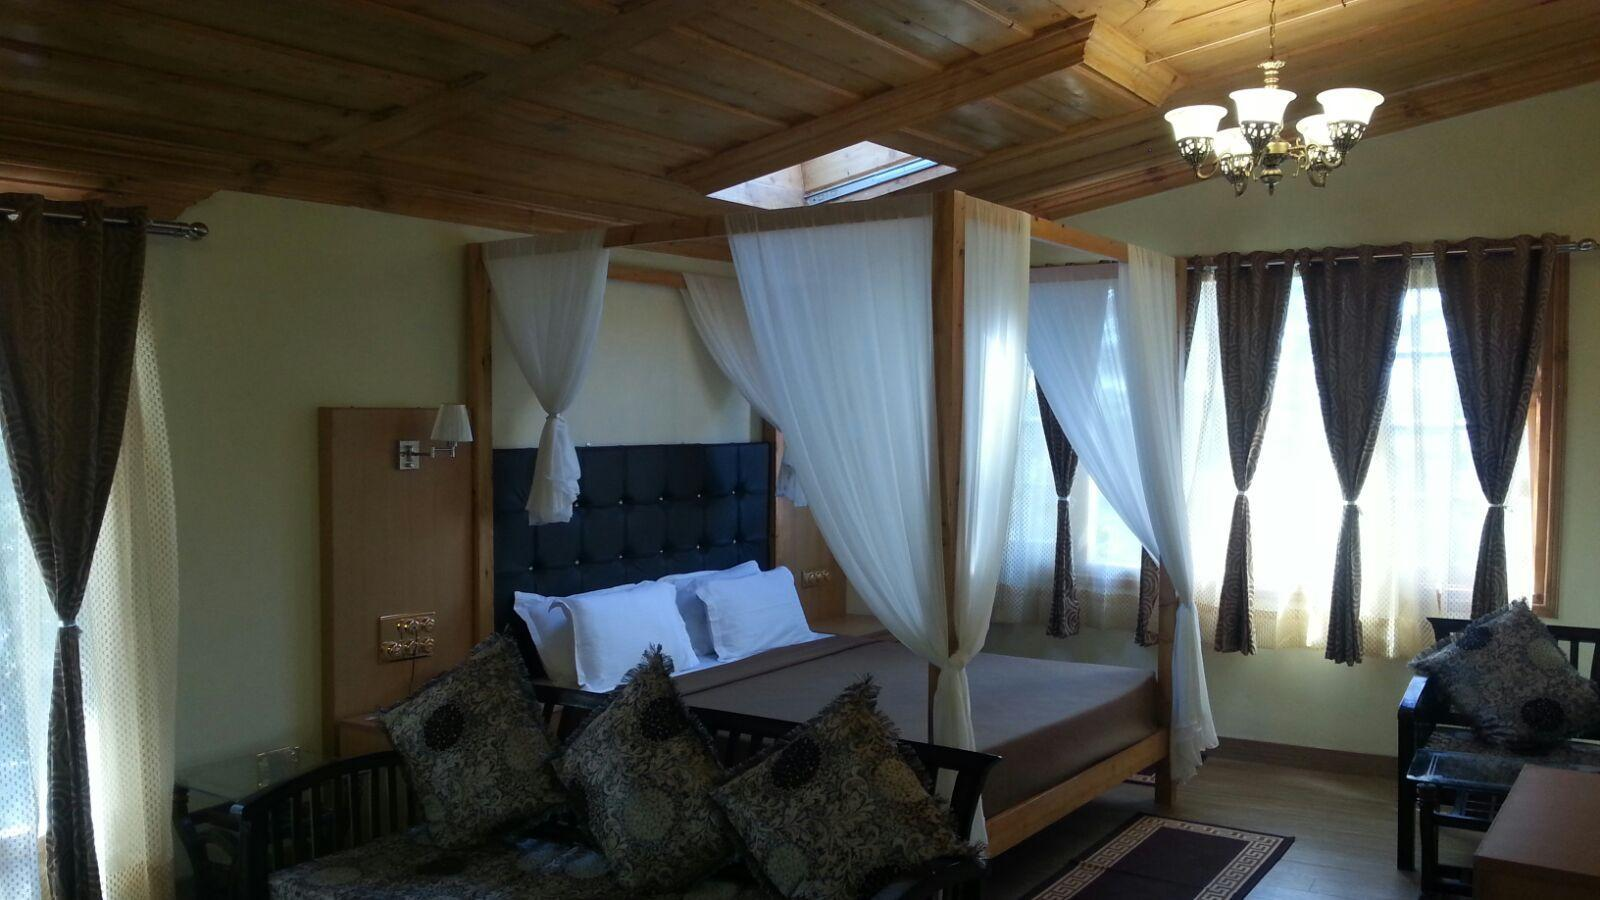 Bilik Bulan Madu (Honeymoon Room)